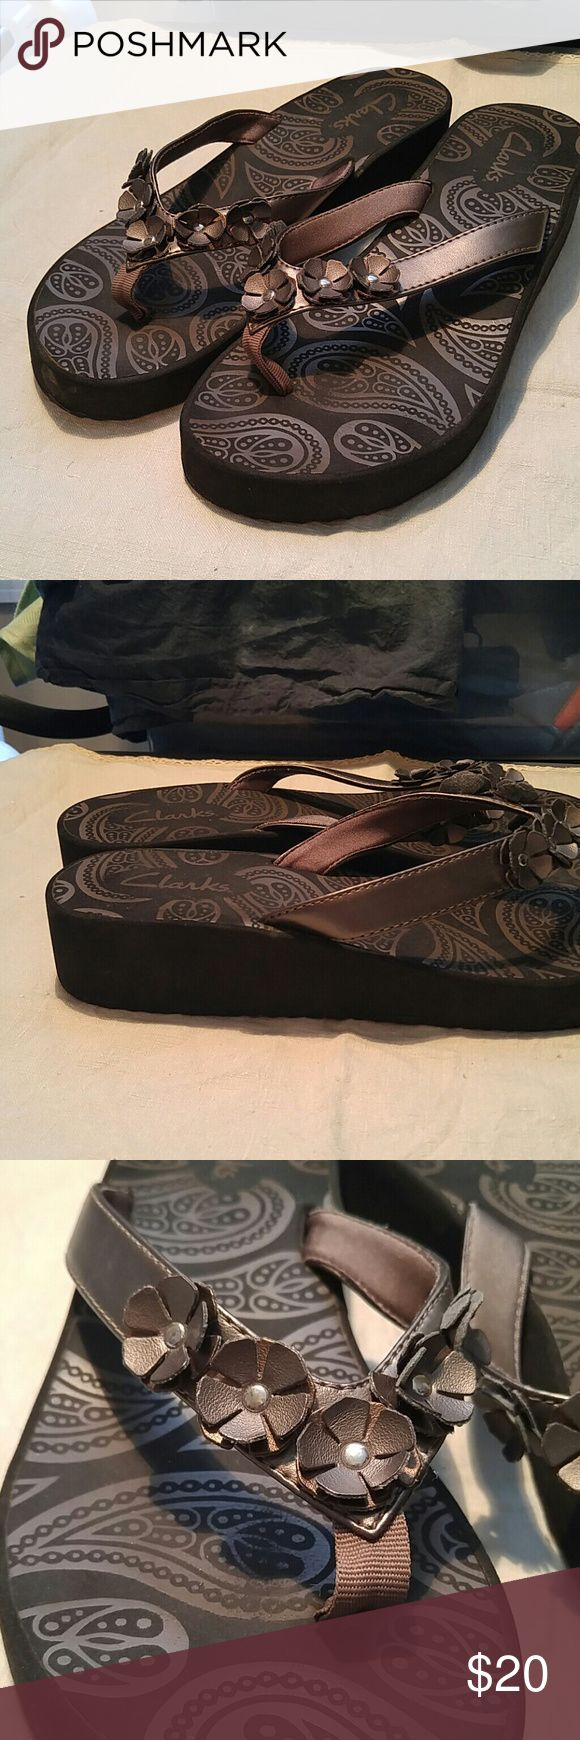 Clark's Pewter Floral Wedge Flip Flops Size 9 Clark's Pewter Floral Flip Flops. Size is worn off but it is an 8 1/2- 9 that is what I wear. Great condition!! Clark's Shoes Sandals